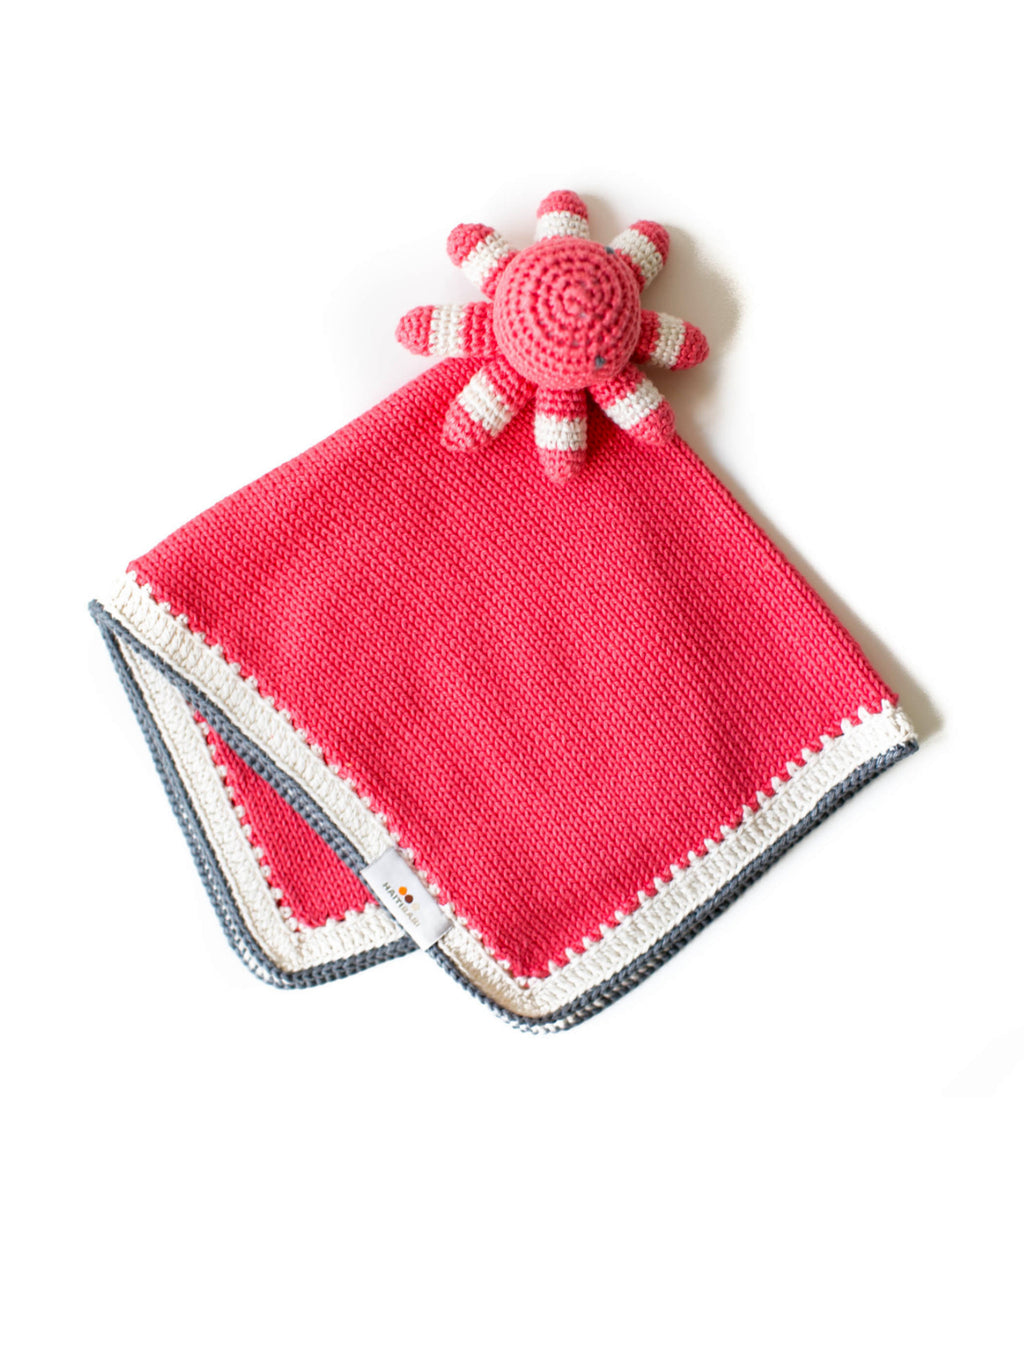 Octopus Baby Lovie Blanket